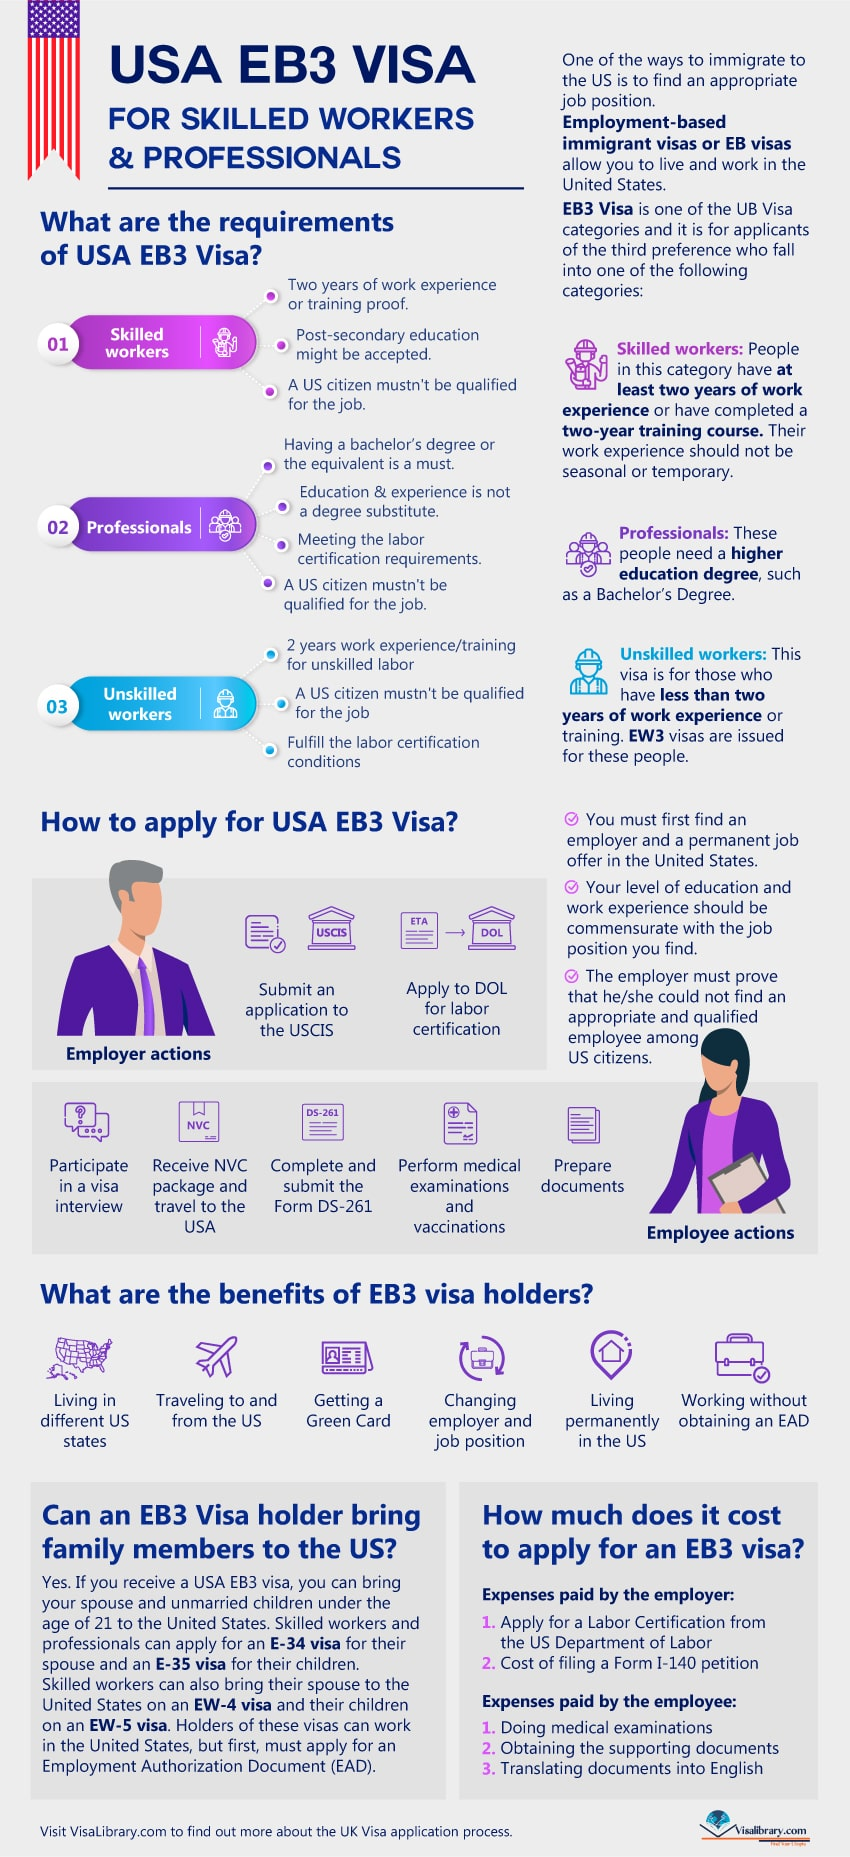 USA EB3 Visa for Skilled Workers & Professionals